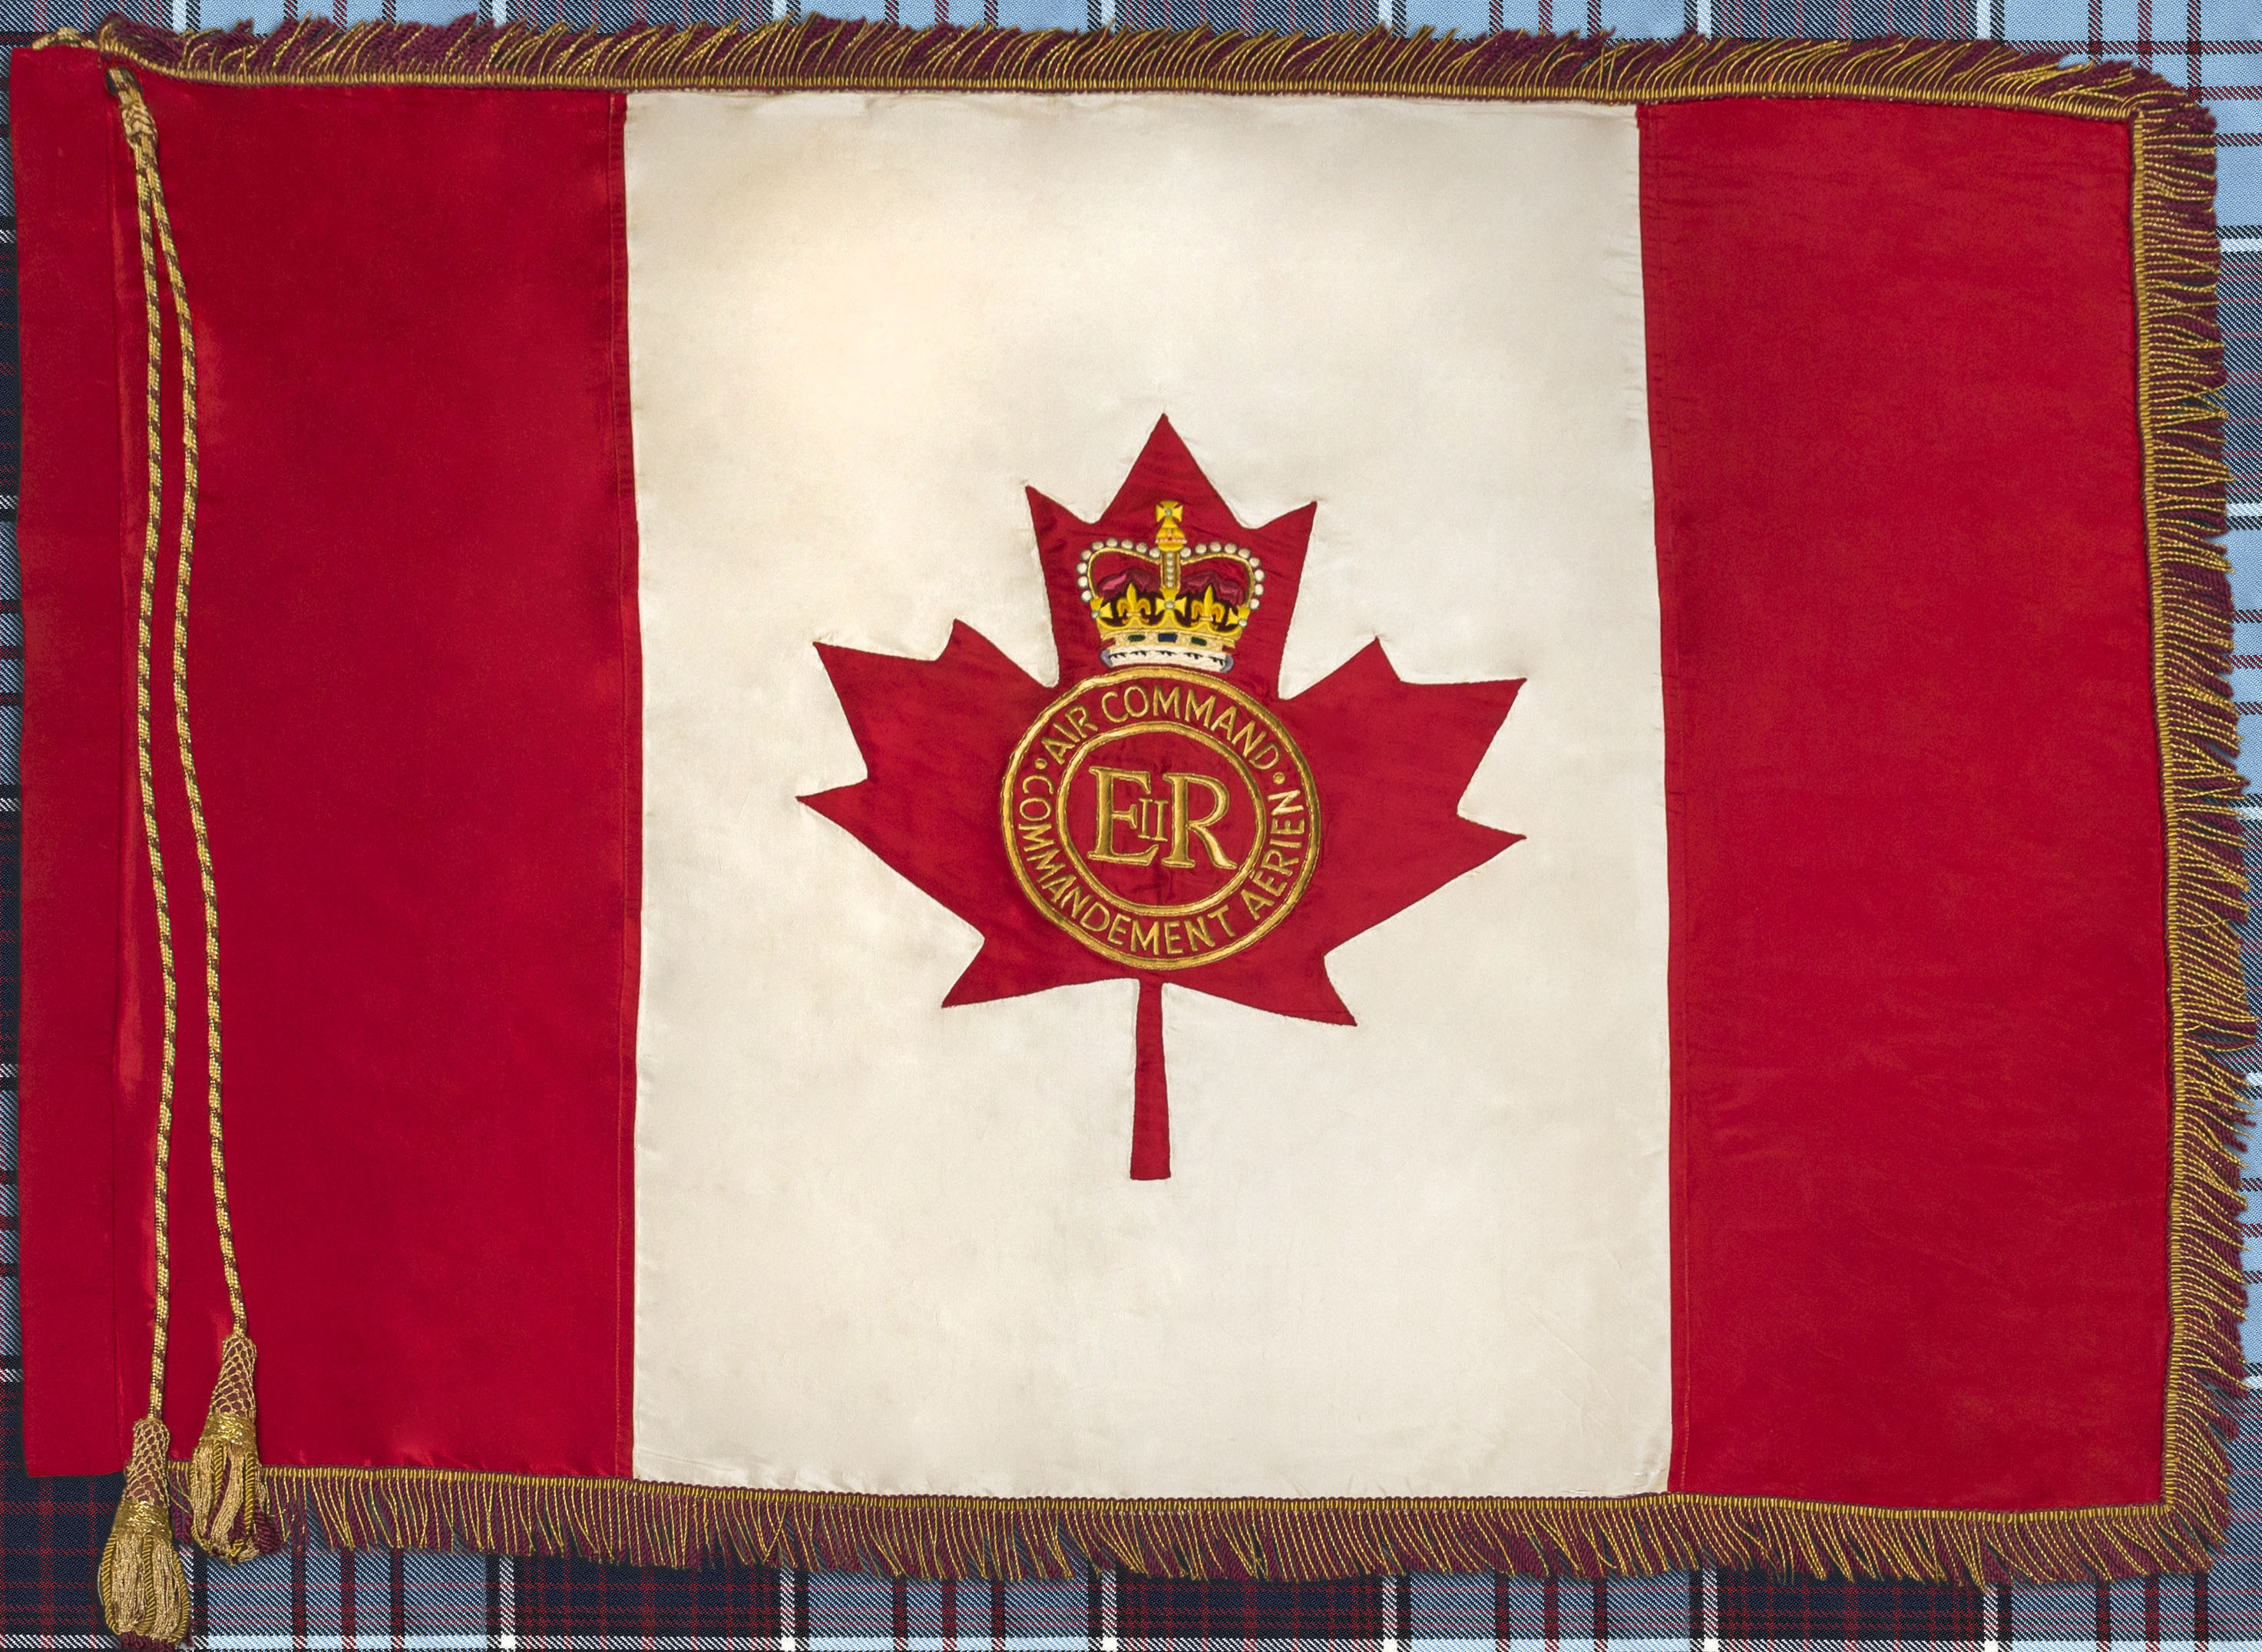 The RCAF's retired Queen's Colour, which was transferred to the guardianship of the Toronto Maple Leafs on February 10, 2018, reflects the Air Force's earlier identity as Air Command. PHOTO: Corporal Alana Morin, FA03-2018-0014-01m